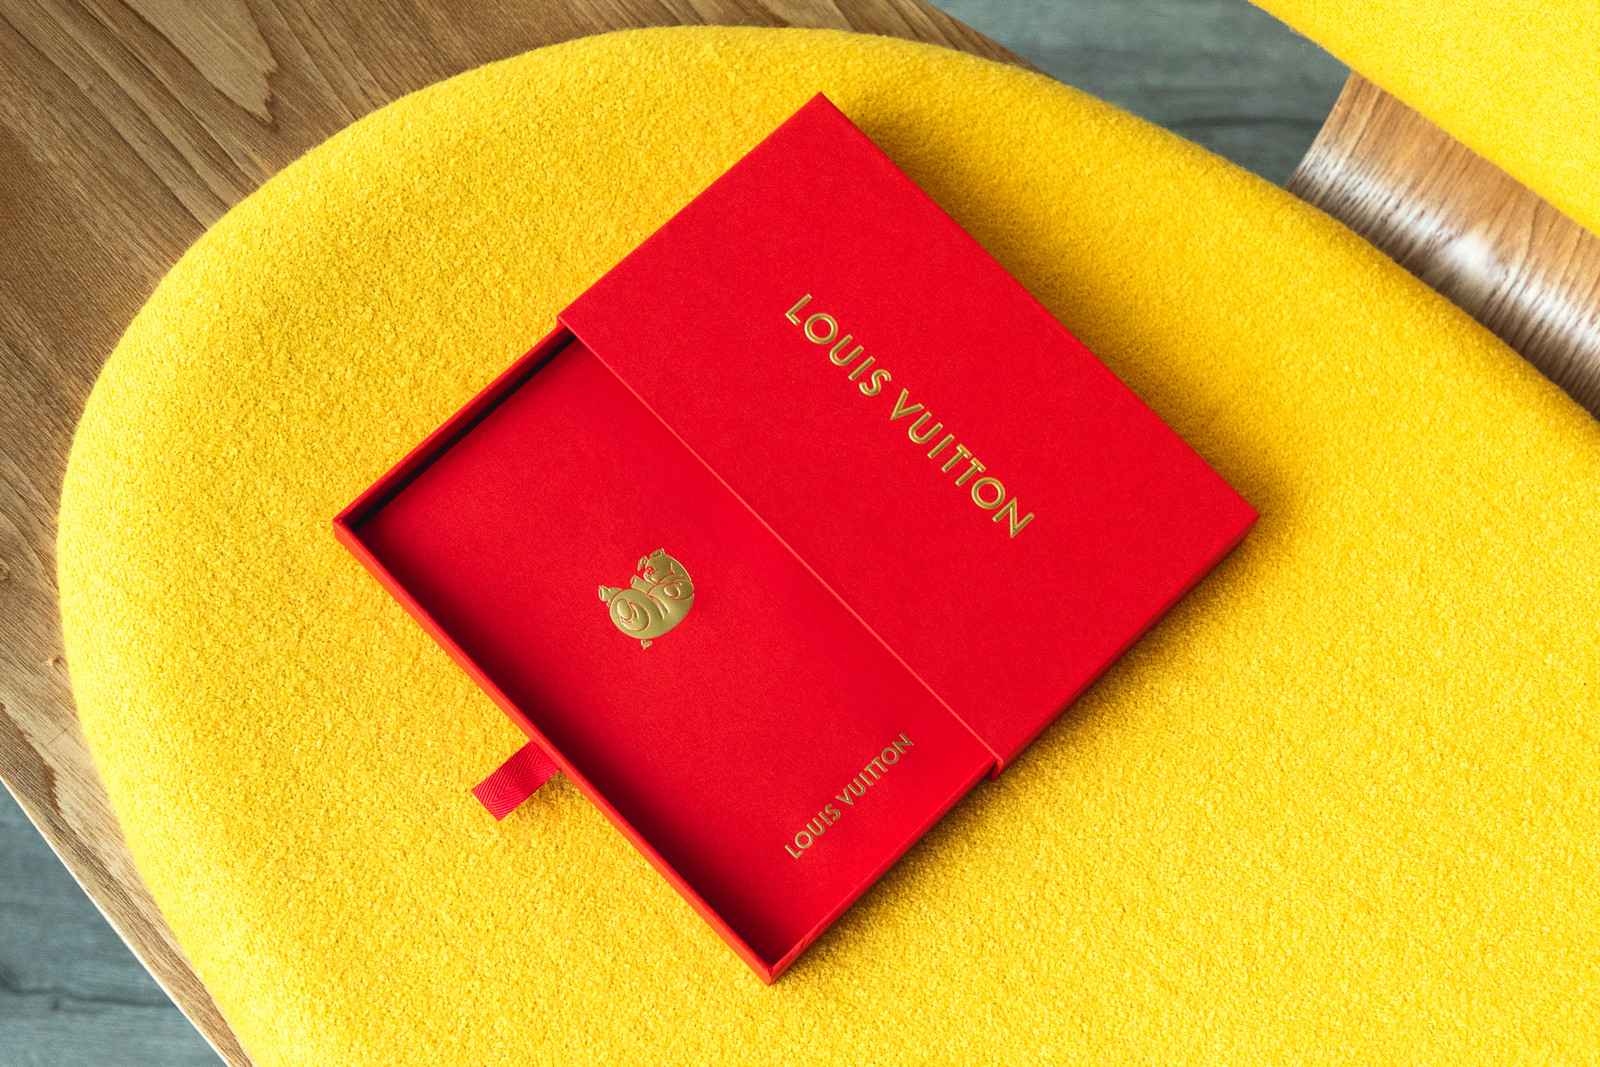 Lunar New Year Red Pockets Hypebeast Top Picks  Gucci Louis Vuitton Fendi Celine Loewe Cartier Versace Givenchy Dior